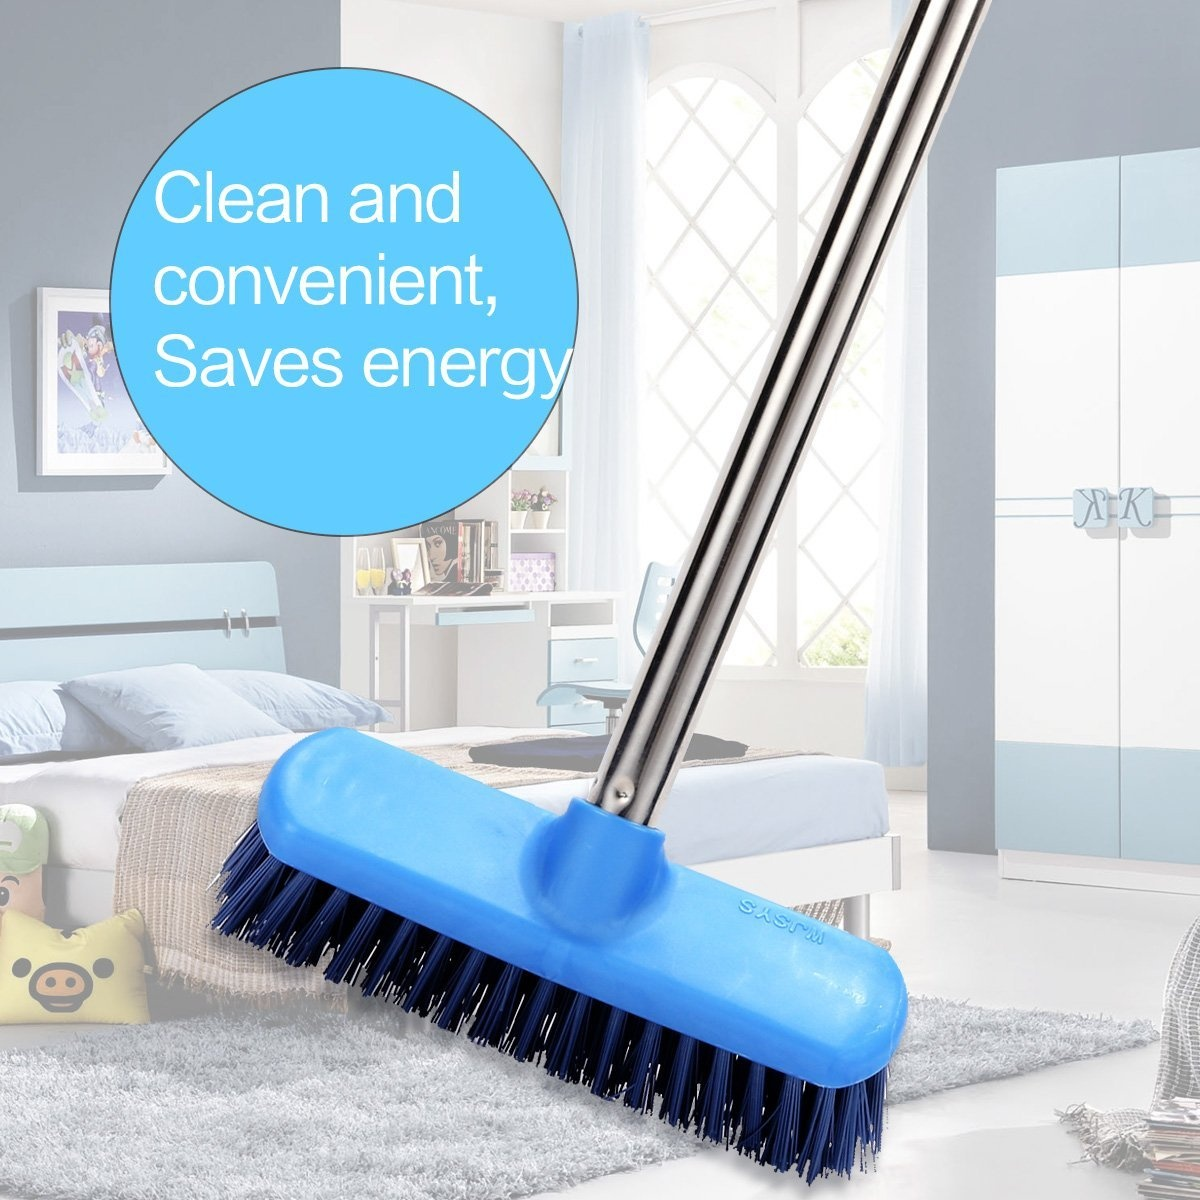 Handled Scrubbing Brush Homeware: Buy Online from Fishpond.co.nz